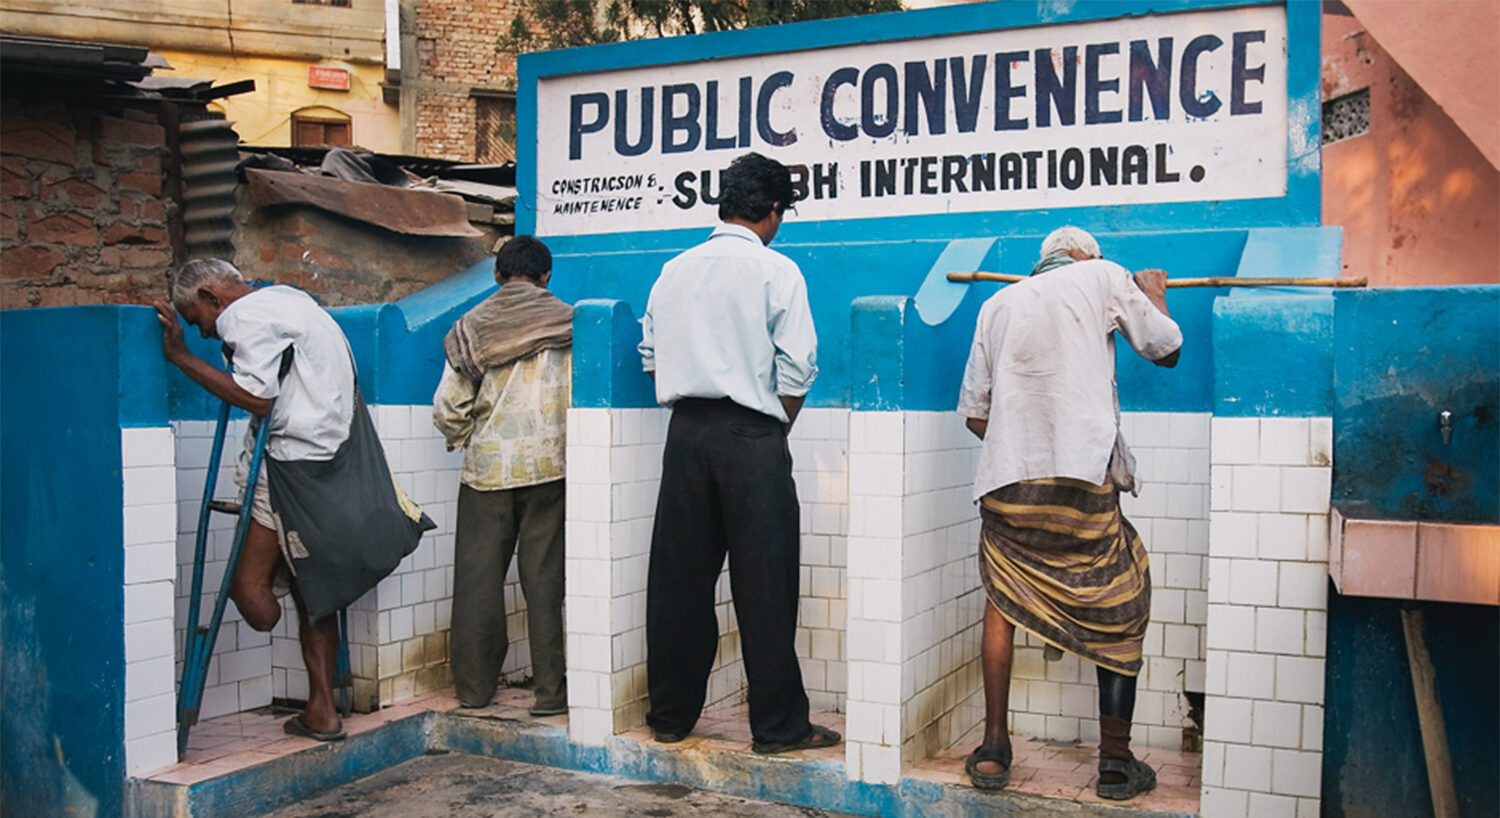 Public Toilet and the Women